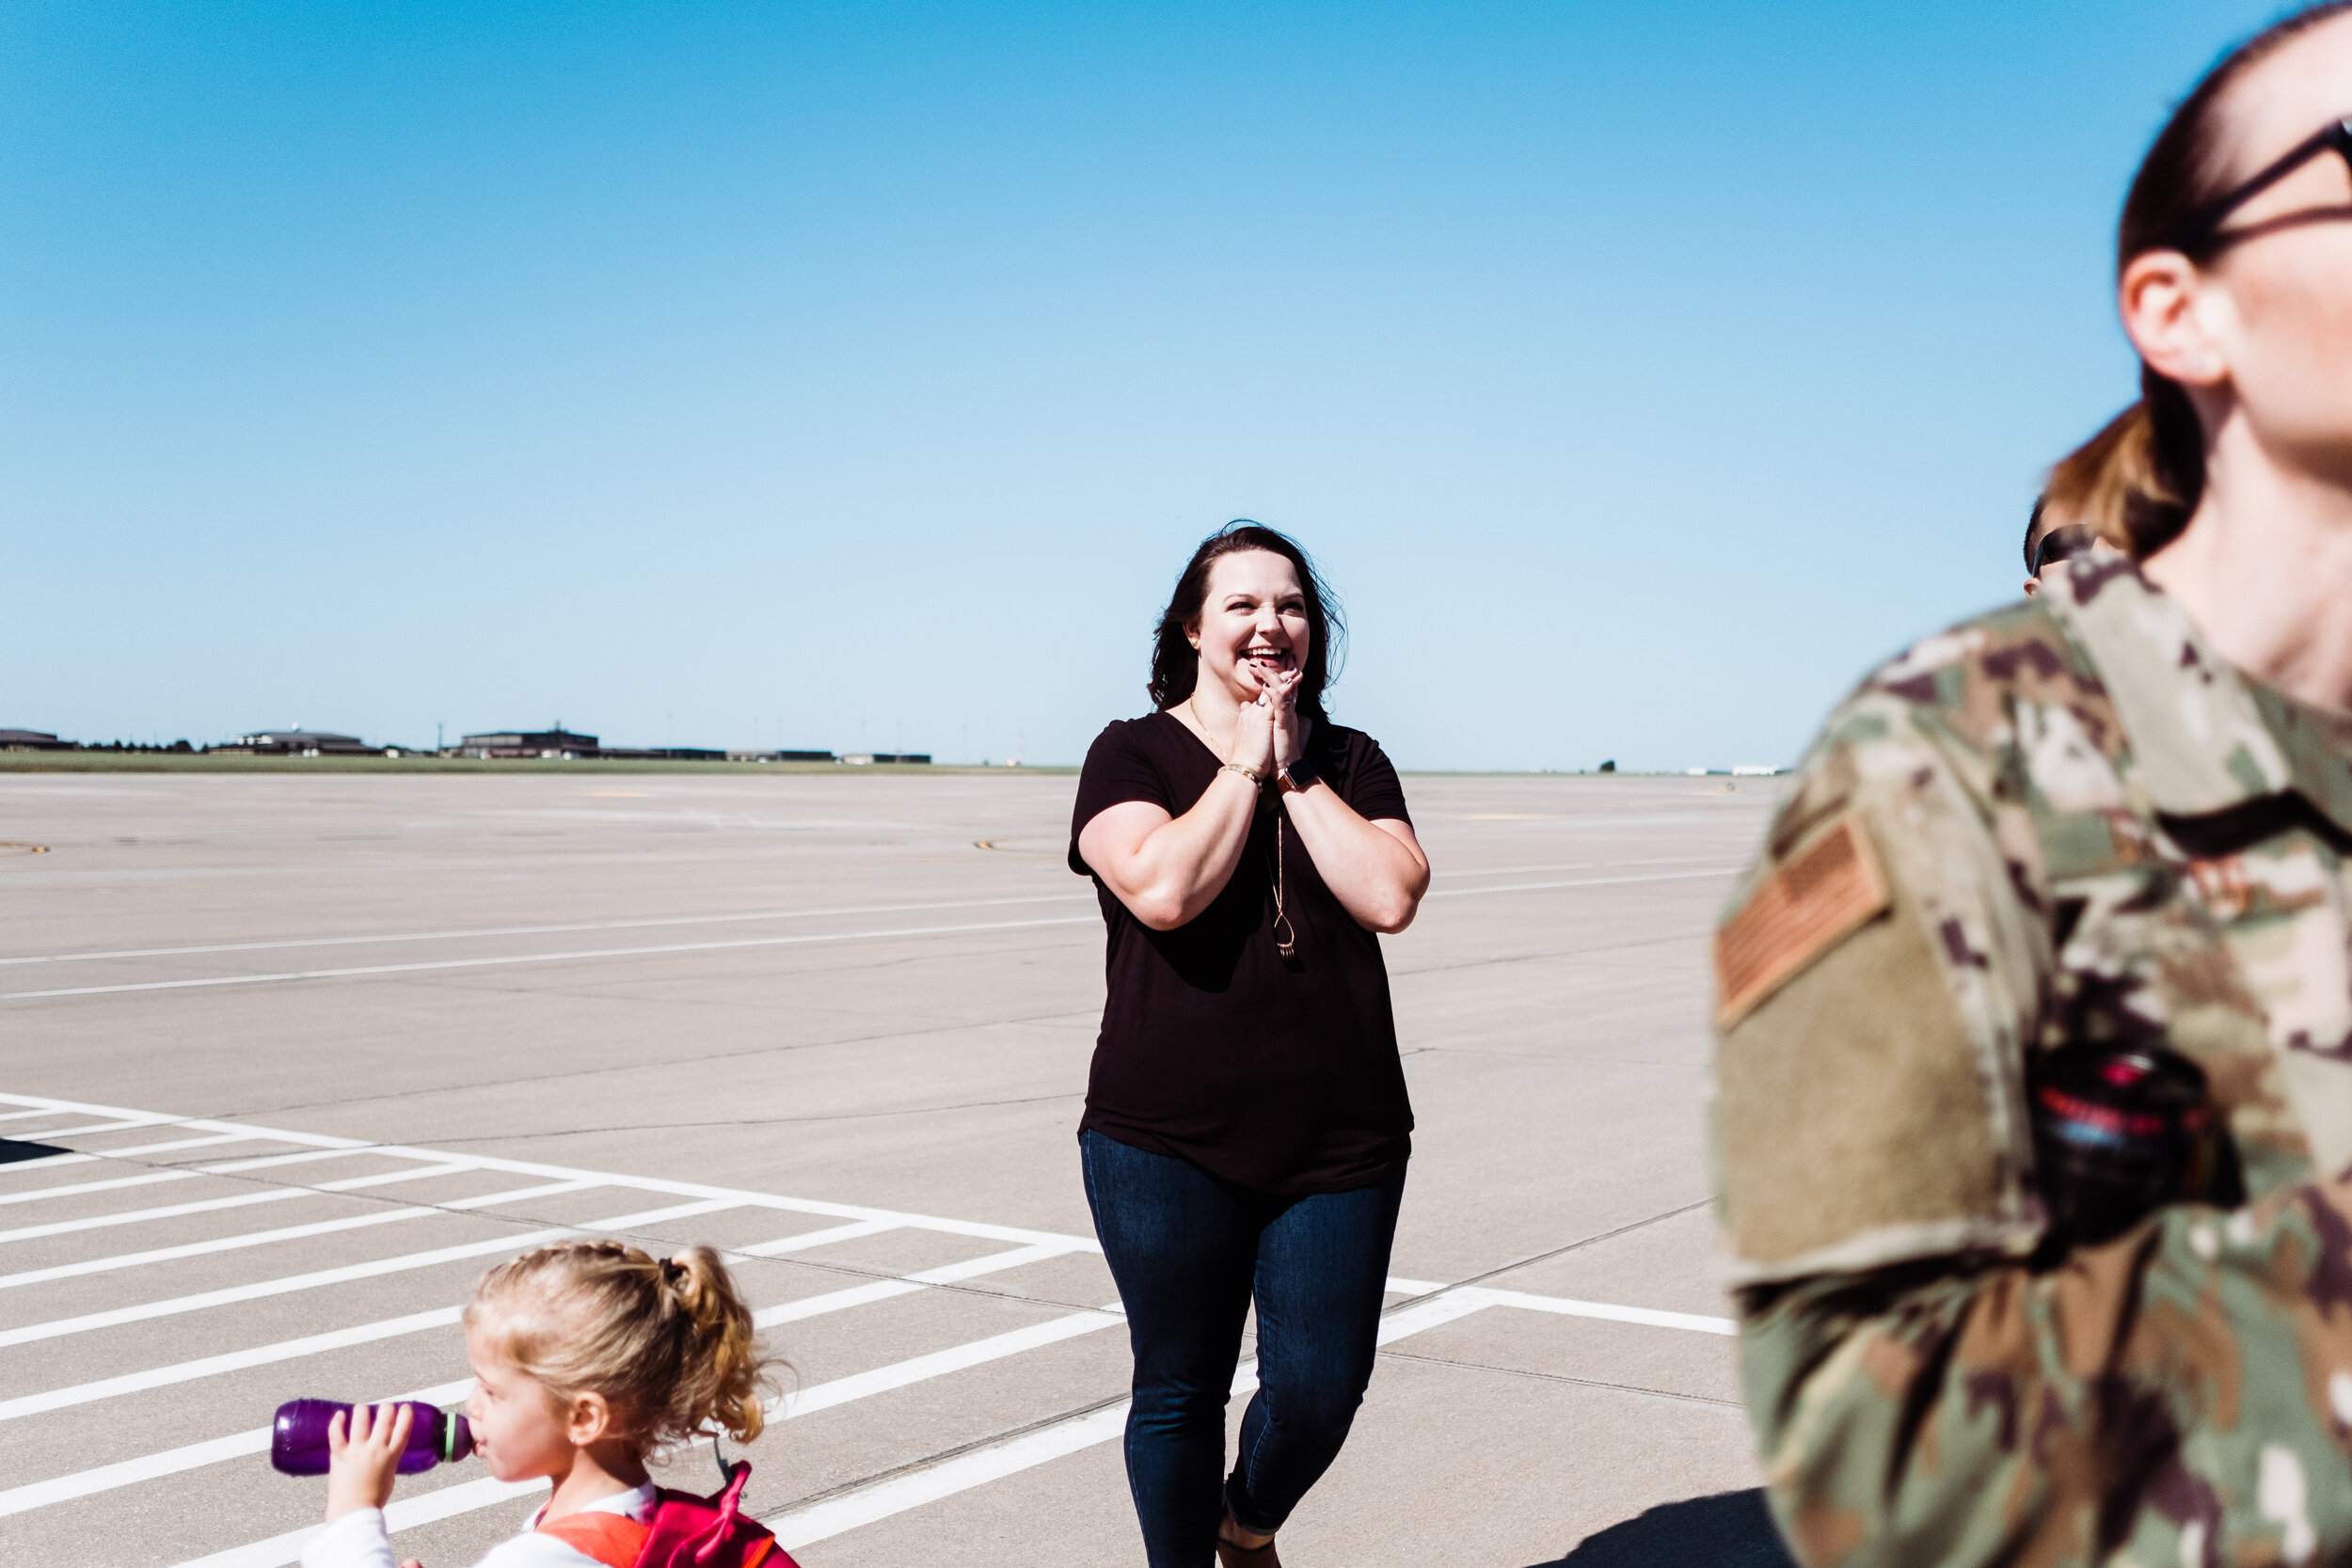 weeks_deployment_homecoming_©seekevingophotography2019-17.jpg